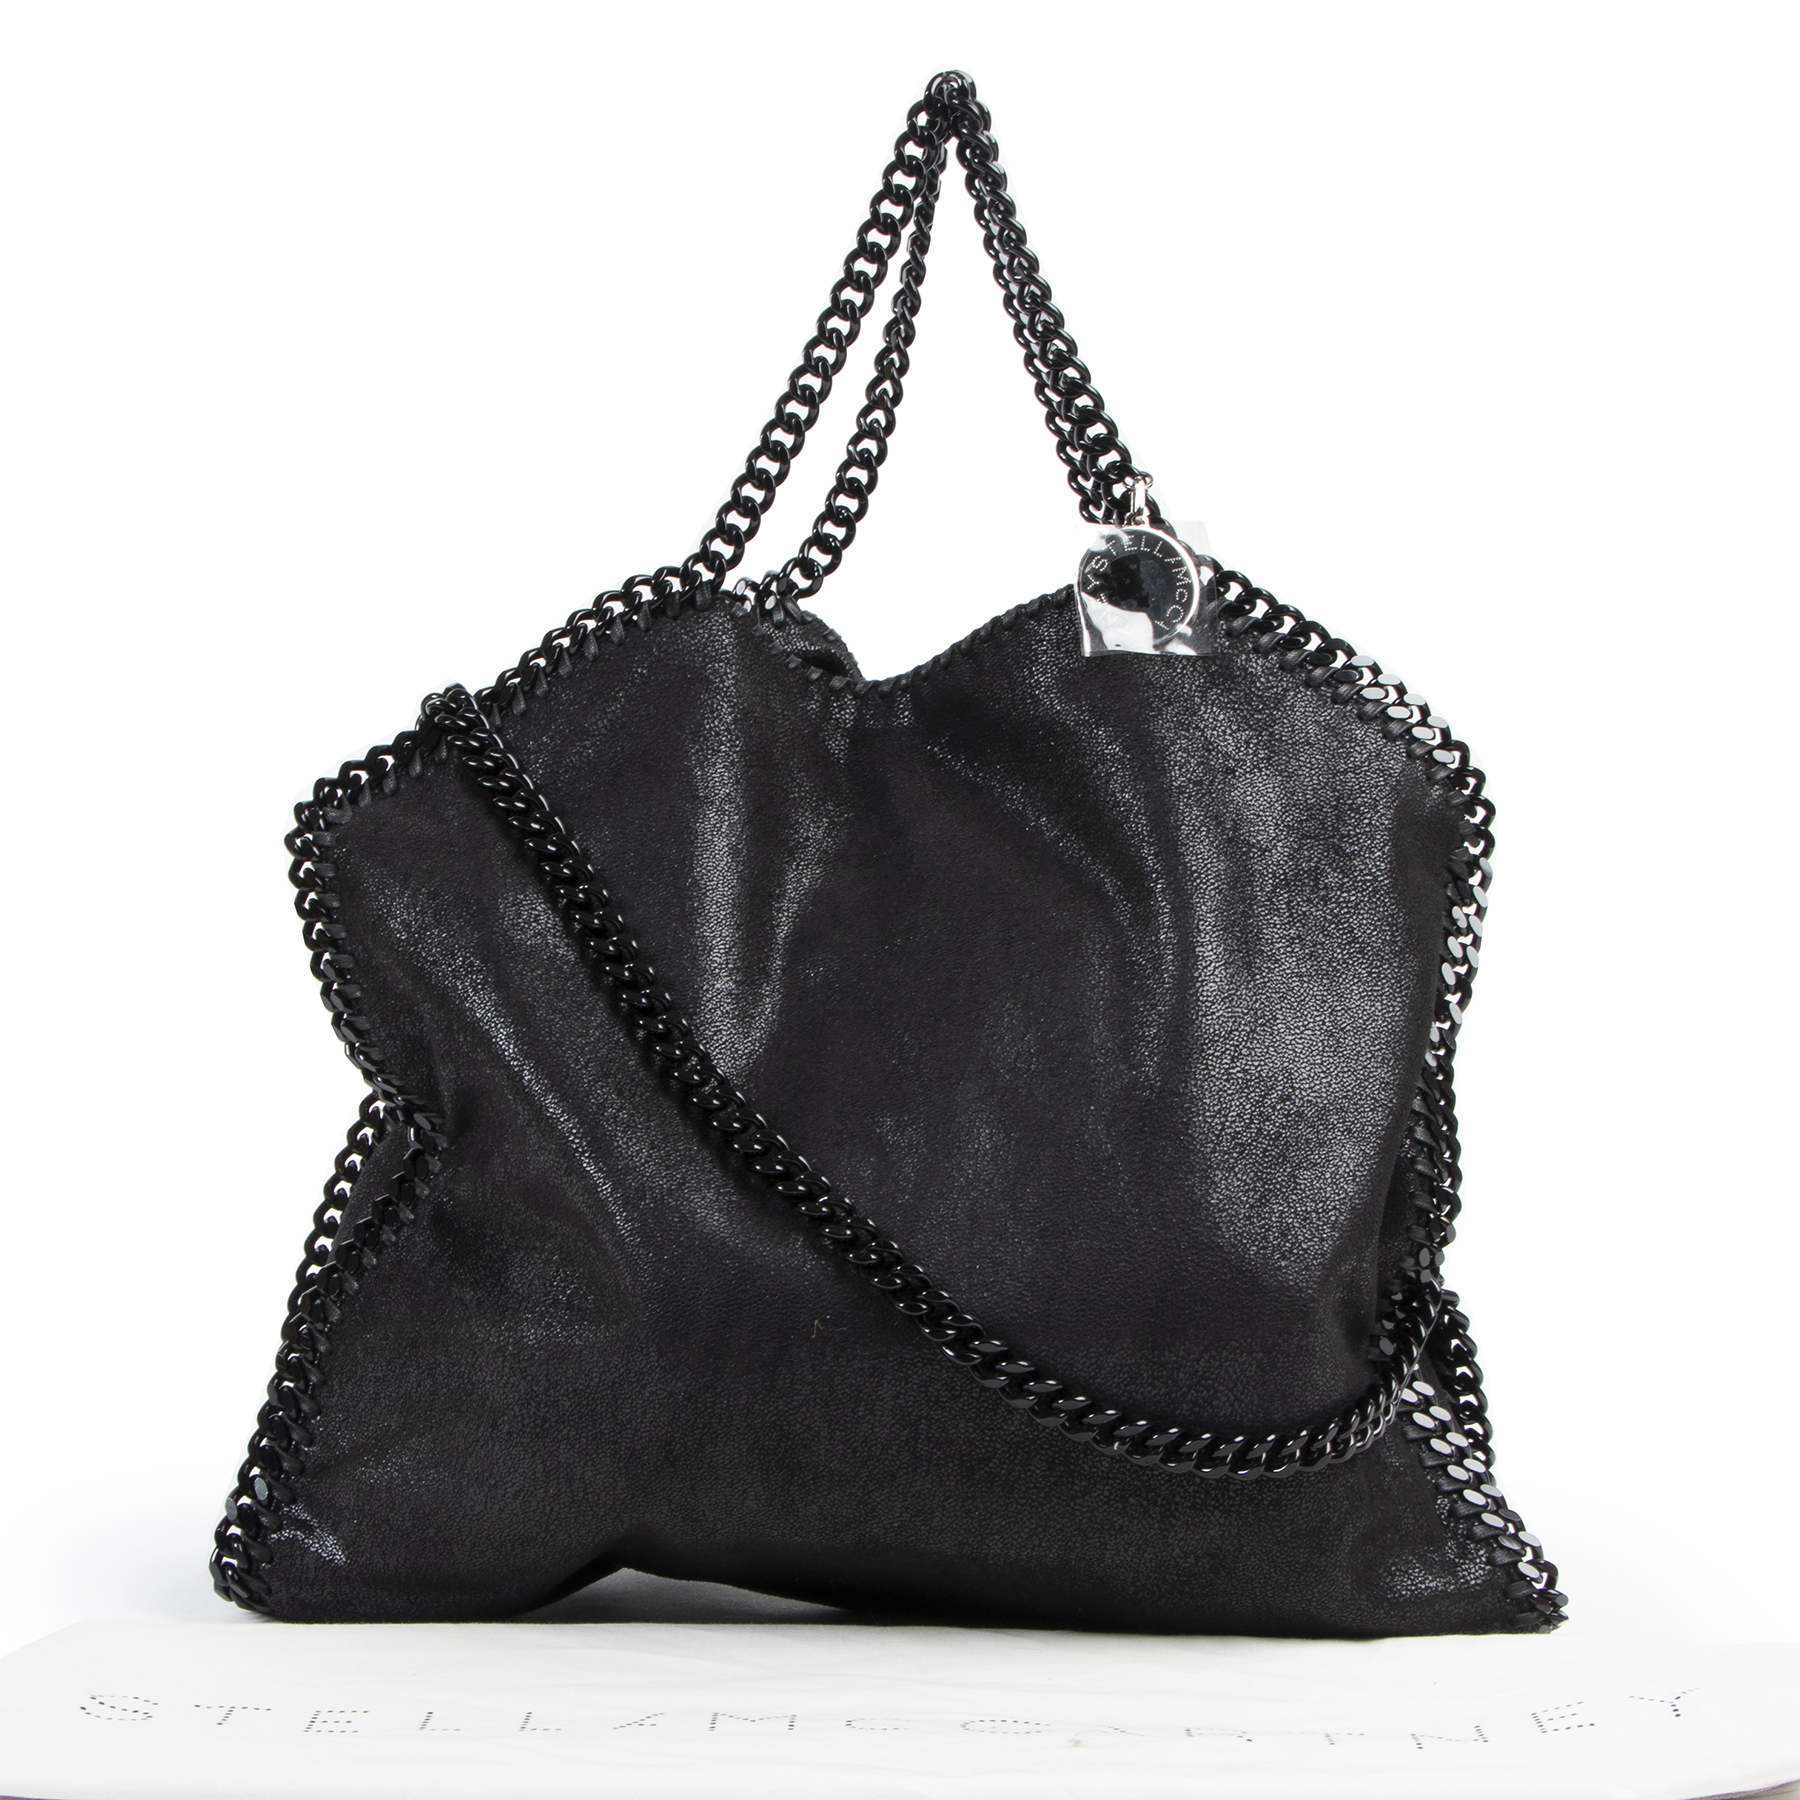 Authentic secondhand Stella McCartney Black Falabella Tote Bag designer bags fashion luxury vintage webshop safe secure online shopping